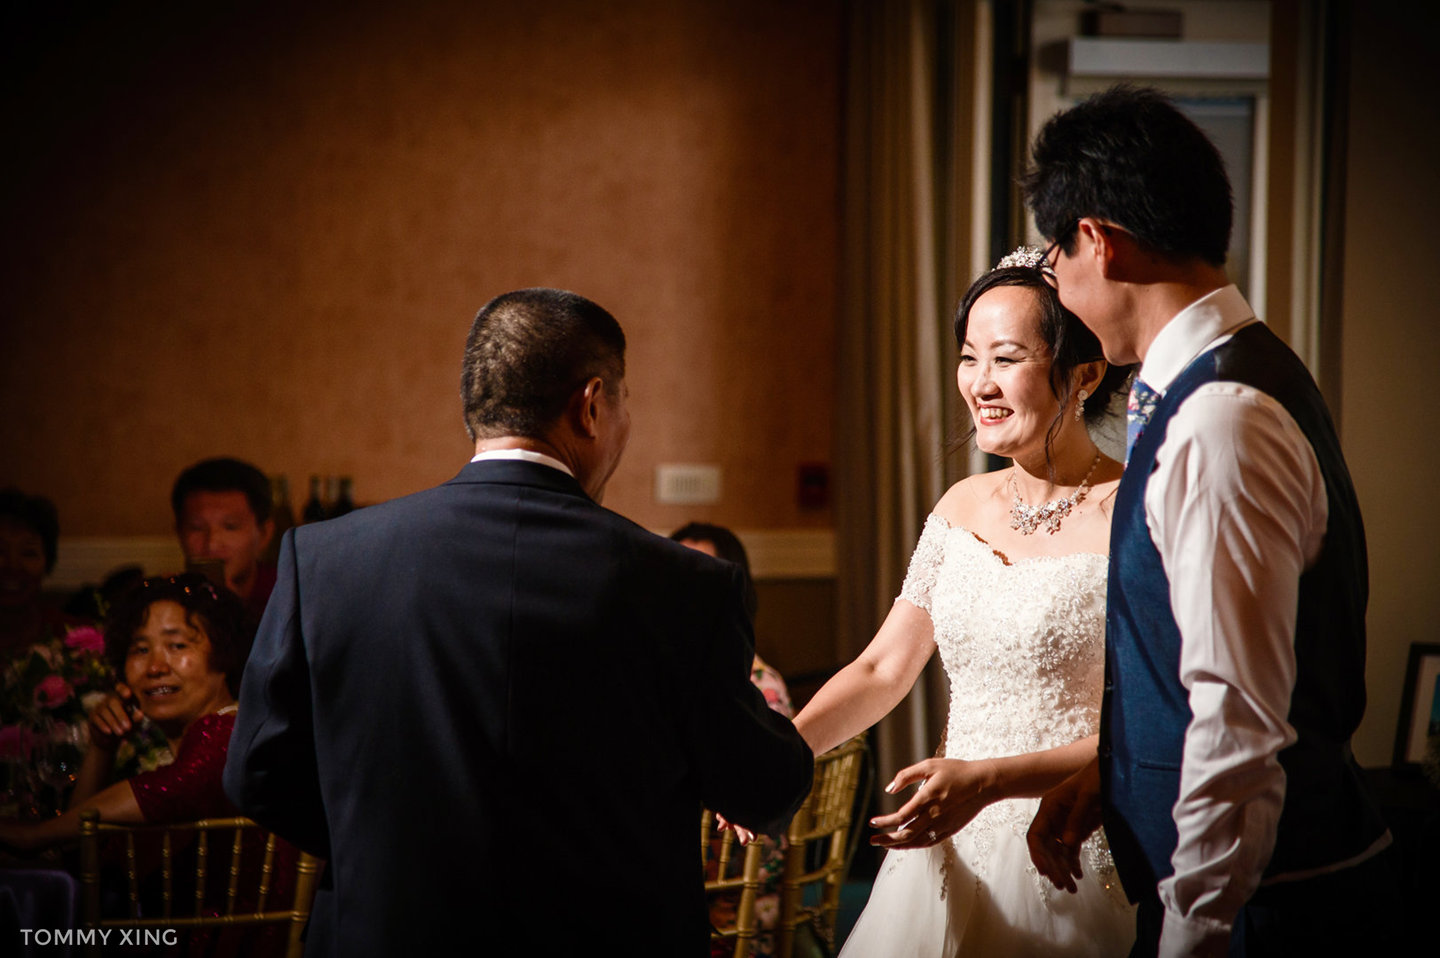 Paradise Point Resort Wedding Xiaolu & Bin San Diego 圣地亚哥婚礼摄影跟拍 Tommy Xing Photography 洛杉矶婚礼婚纱照摄影师 247.jpg